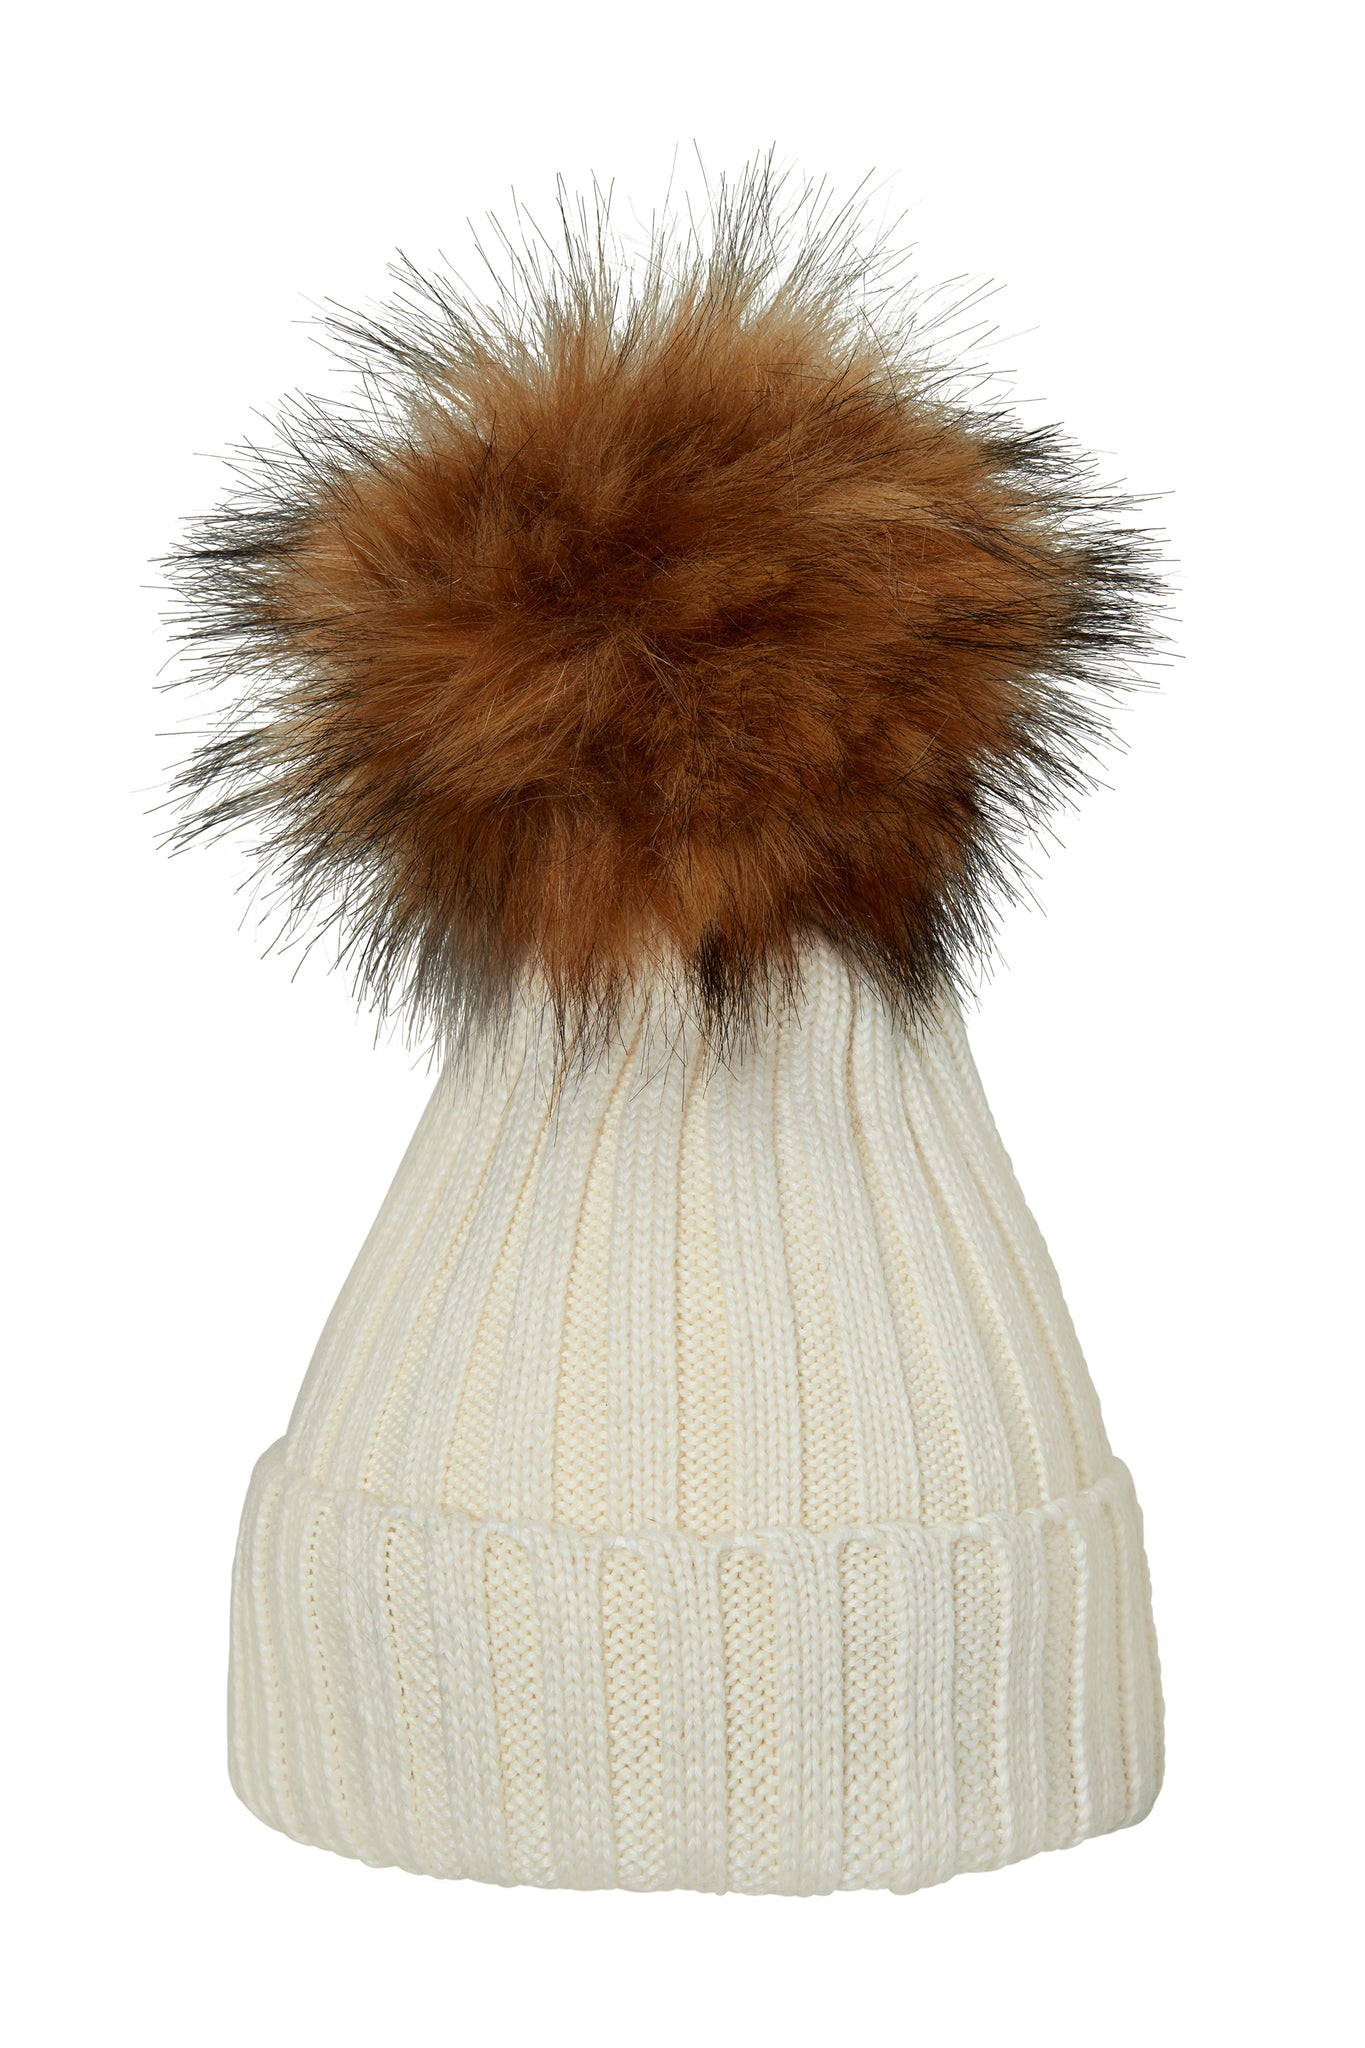 POM POM HAT CLASSIC FAUX FUR WHITE/NATURE